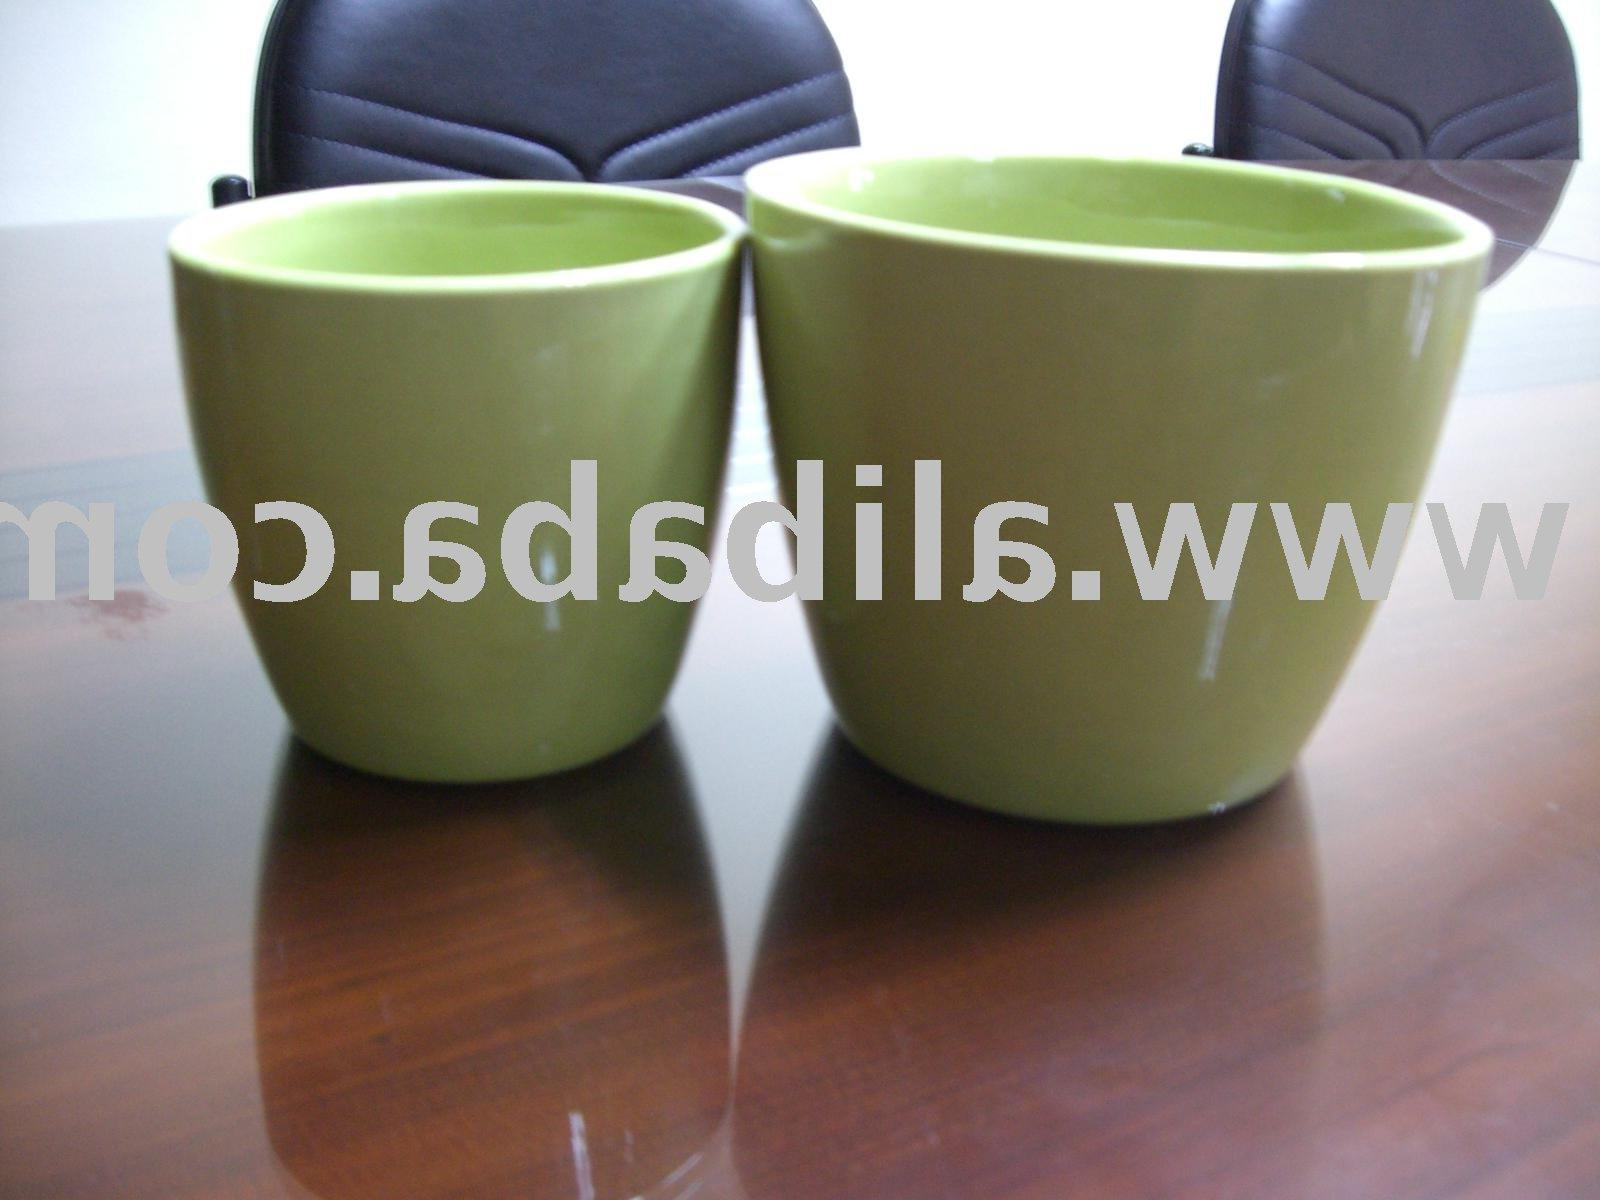 See larger image: Ceramic Flower Pots. Add to My Favorites